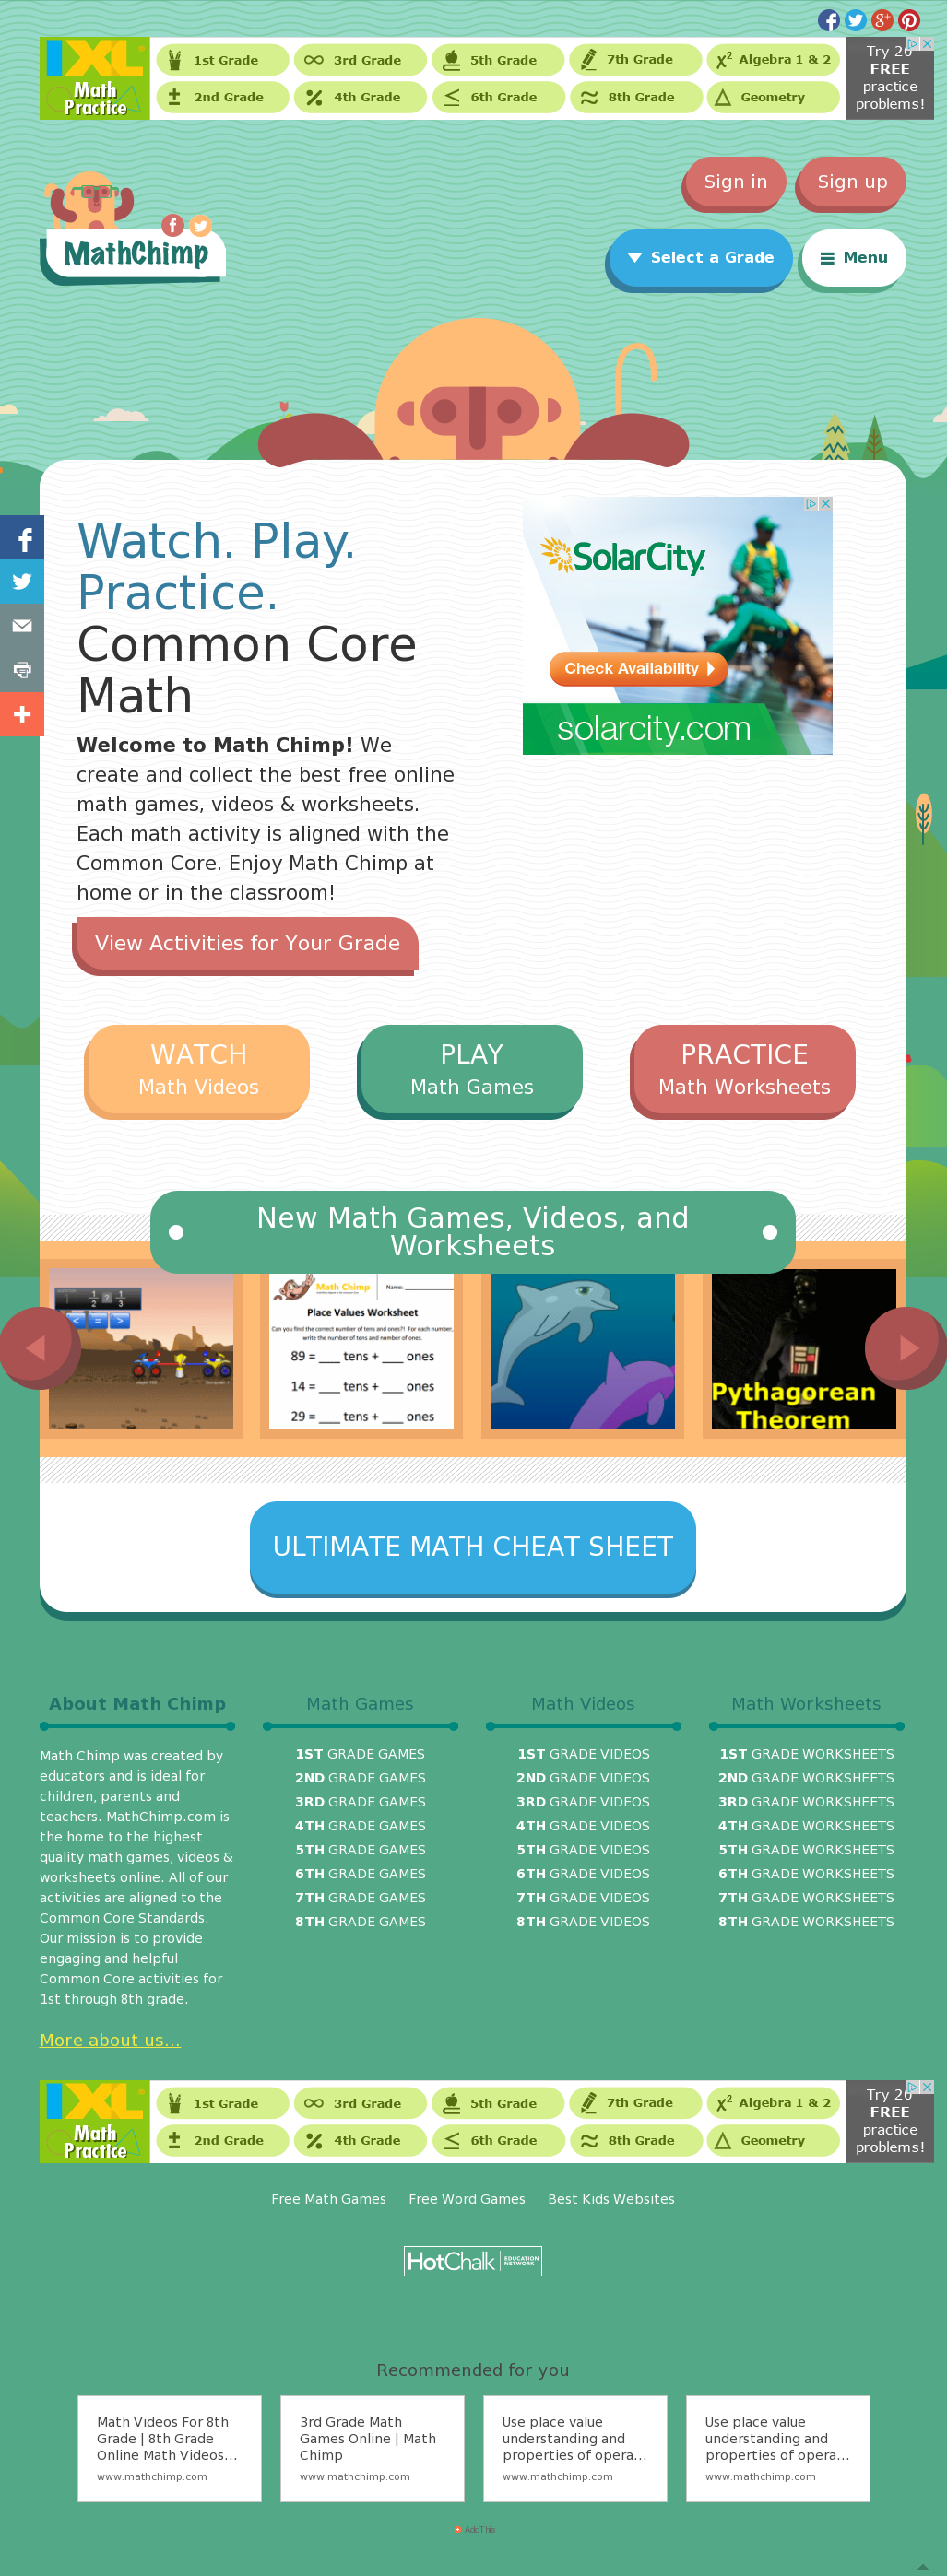 MathChimp Competitors, Revenue and Employees - Owler Company Profile